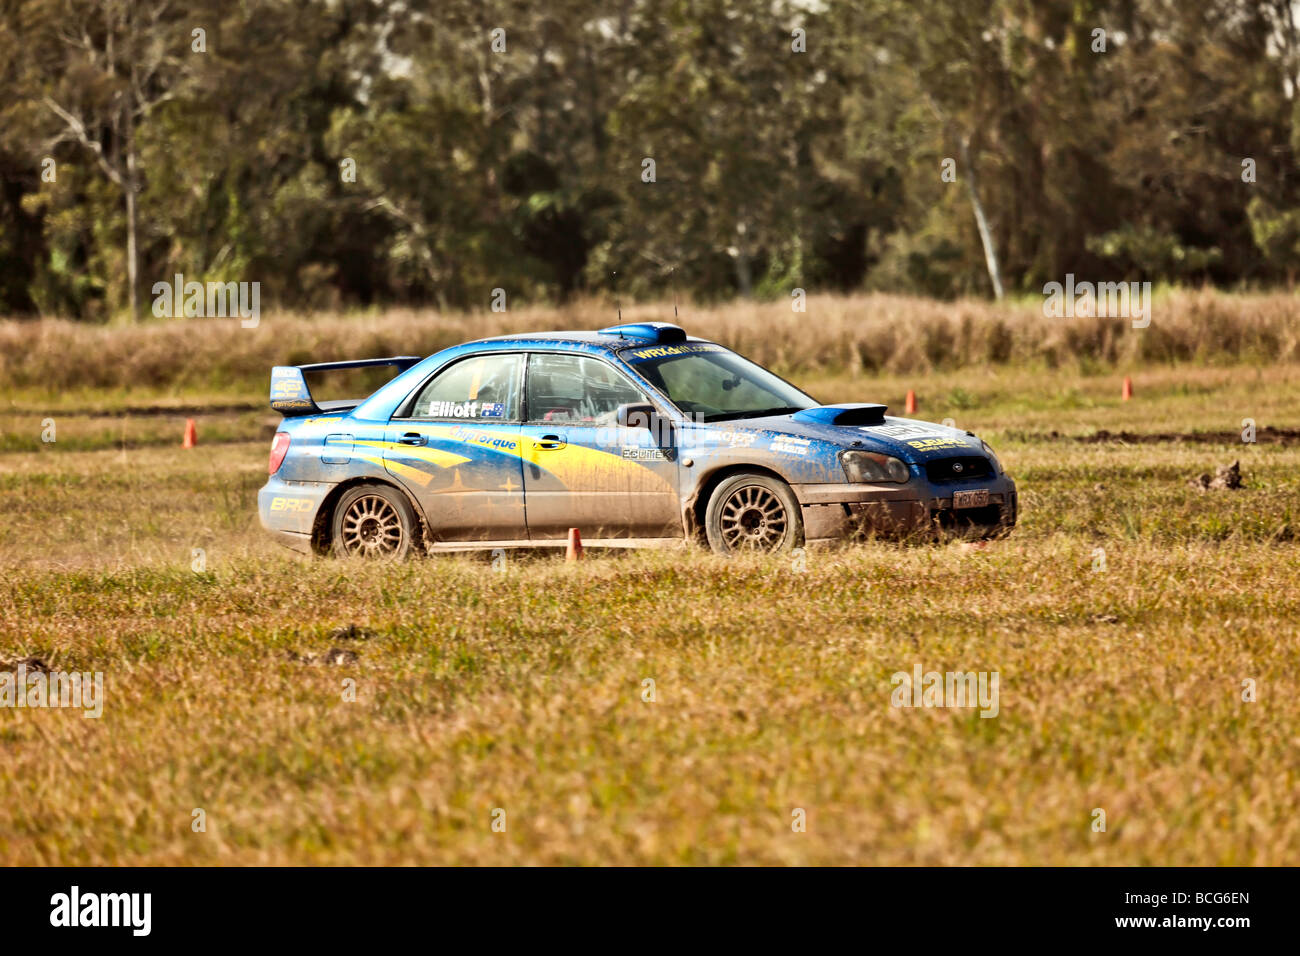 Subaru WRX rally car doing circuits on a dirt track Stock Photo ...